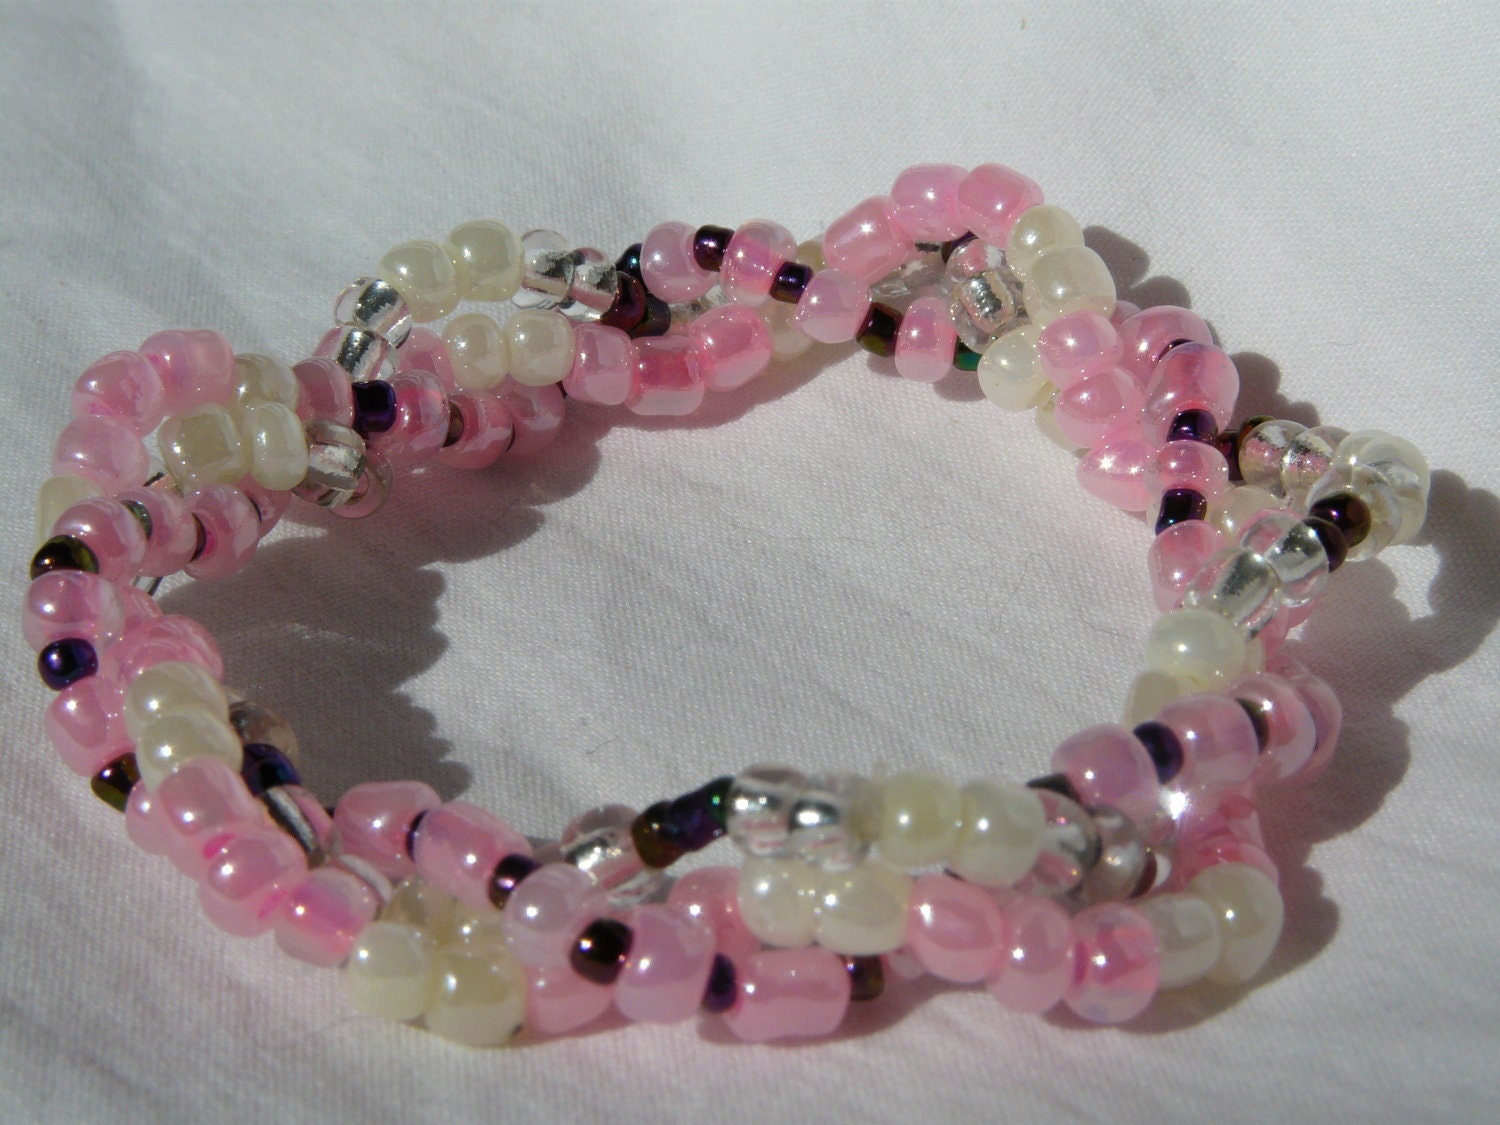 Pink With a Hint 3 Strand Beaded Stretch Bracelet - Custom Made to Size - Nonoluna